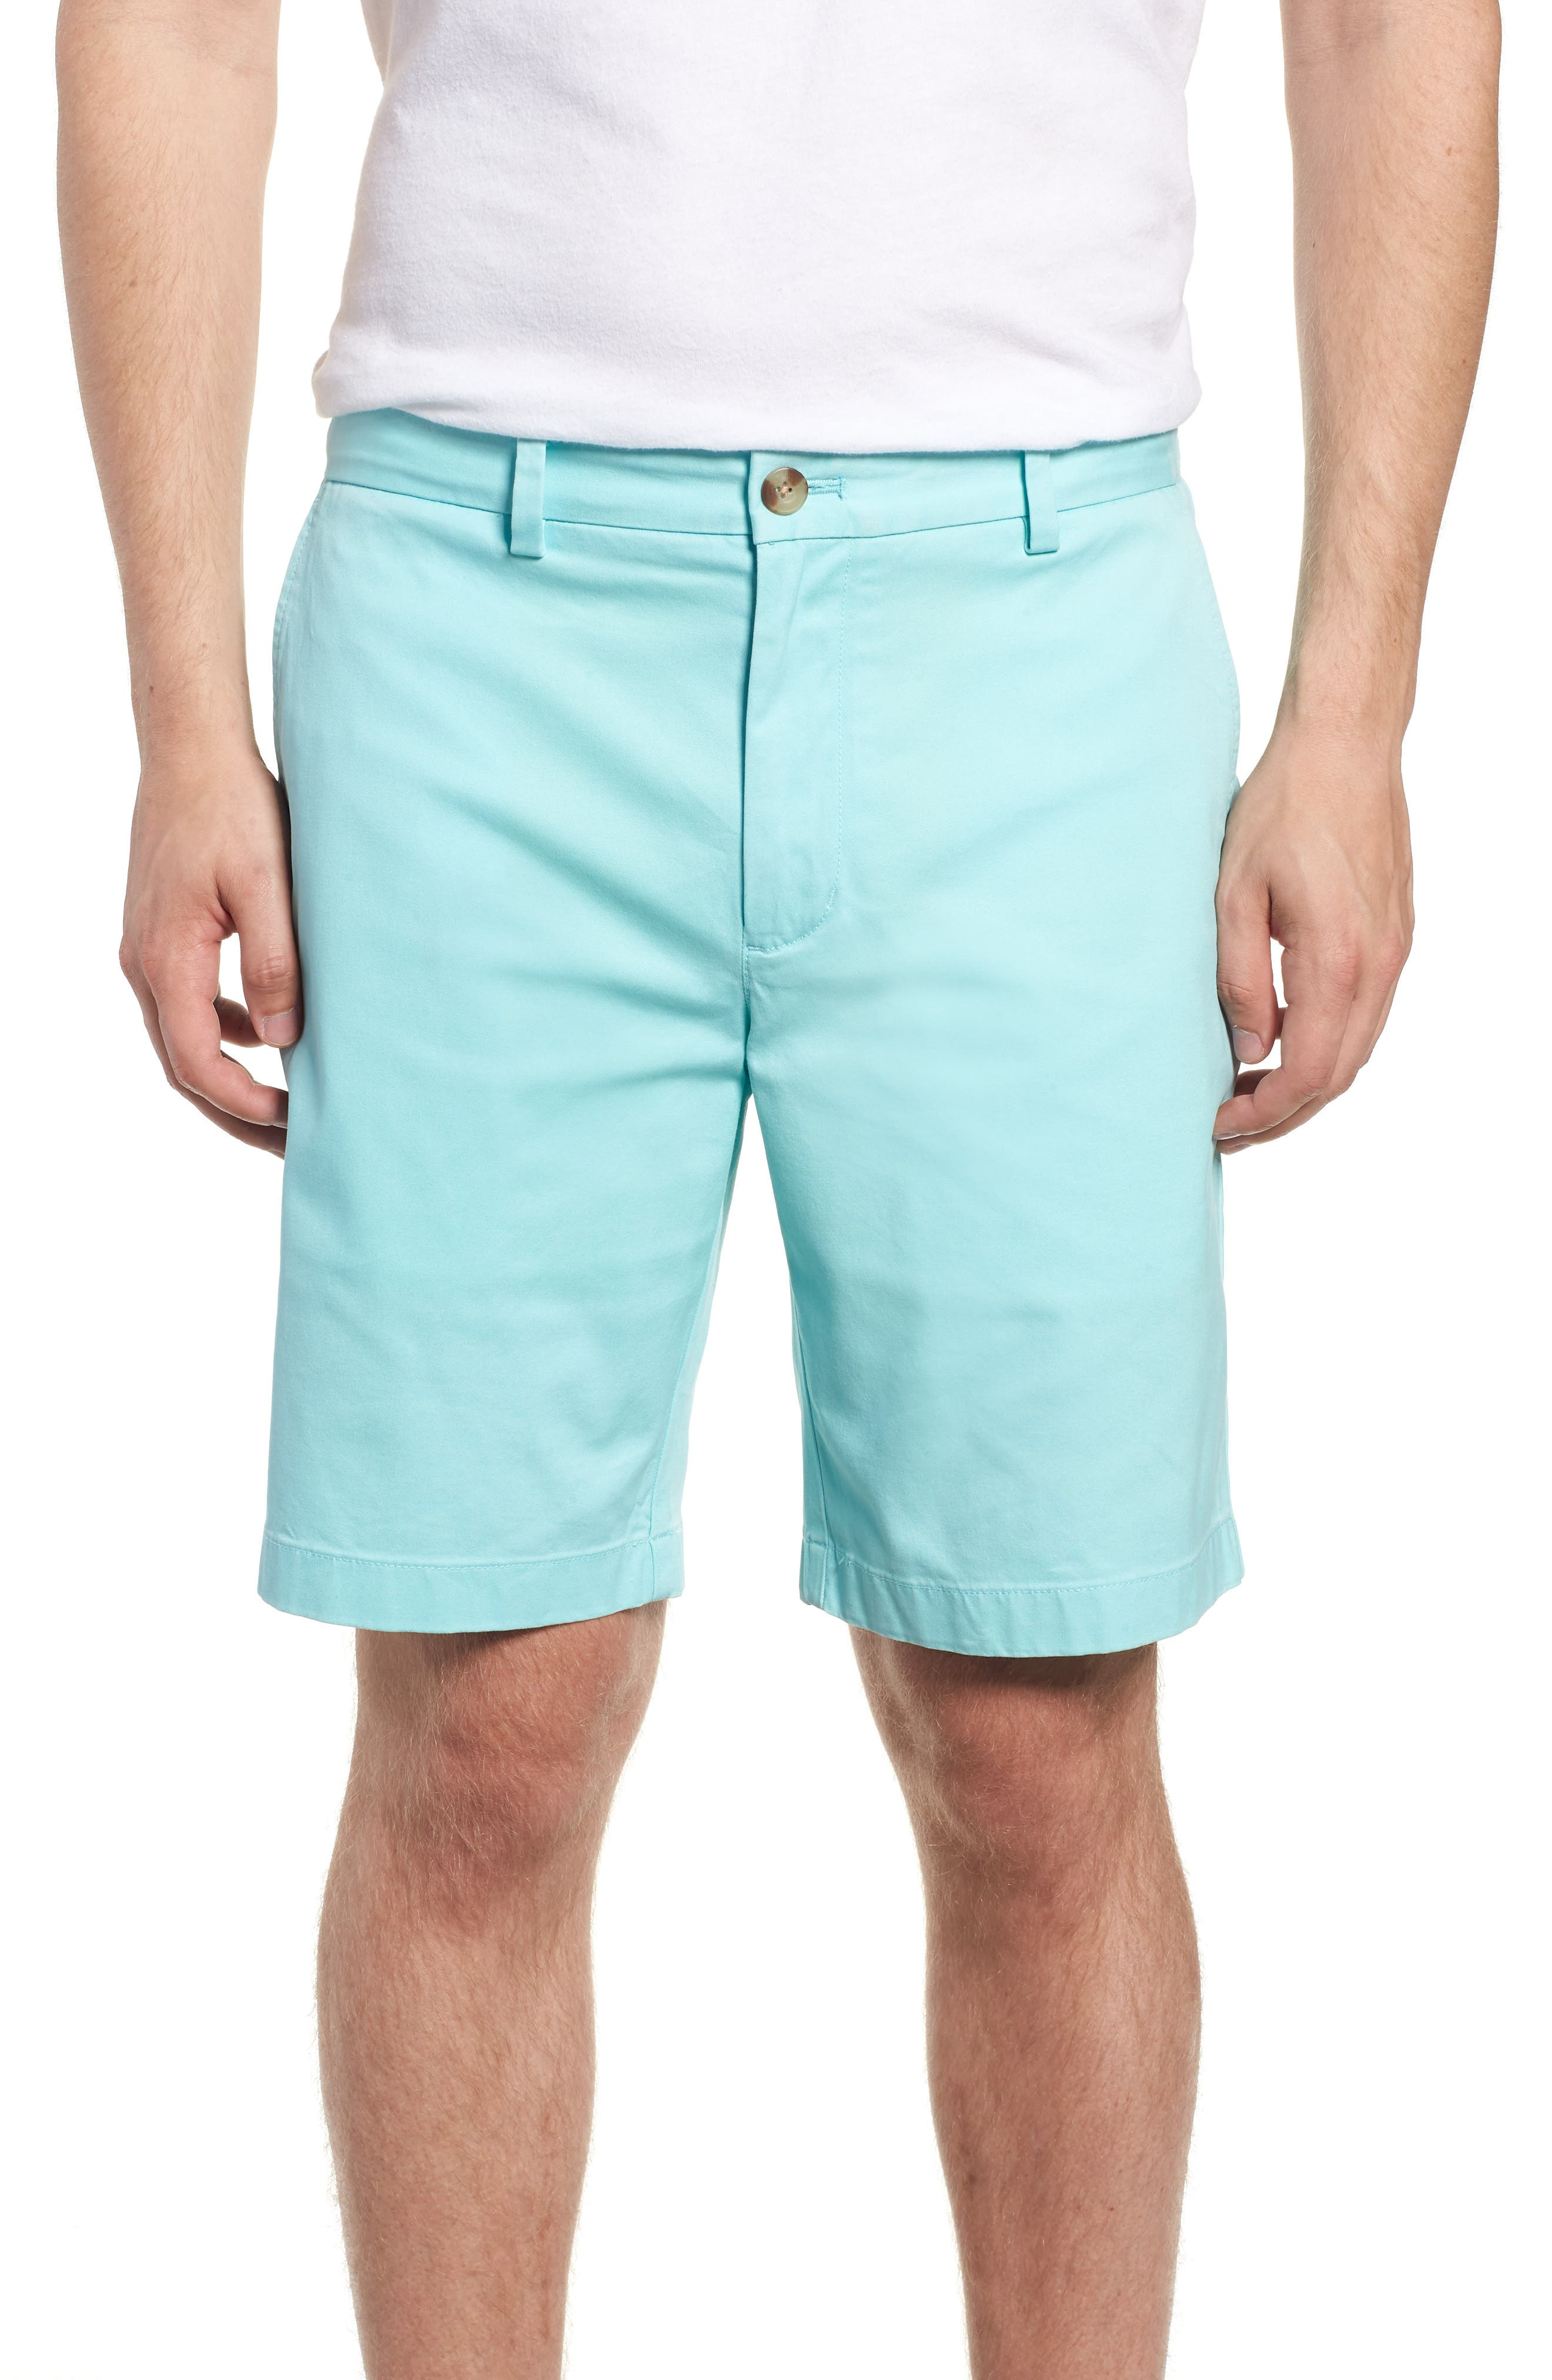 9 Inch Stretch Breaker Shorts,                             Main thumbnail 1, color,                             437